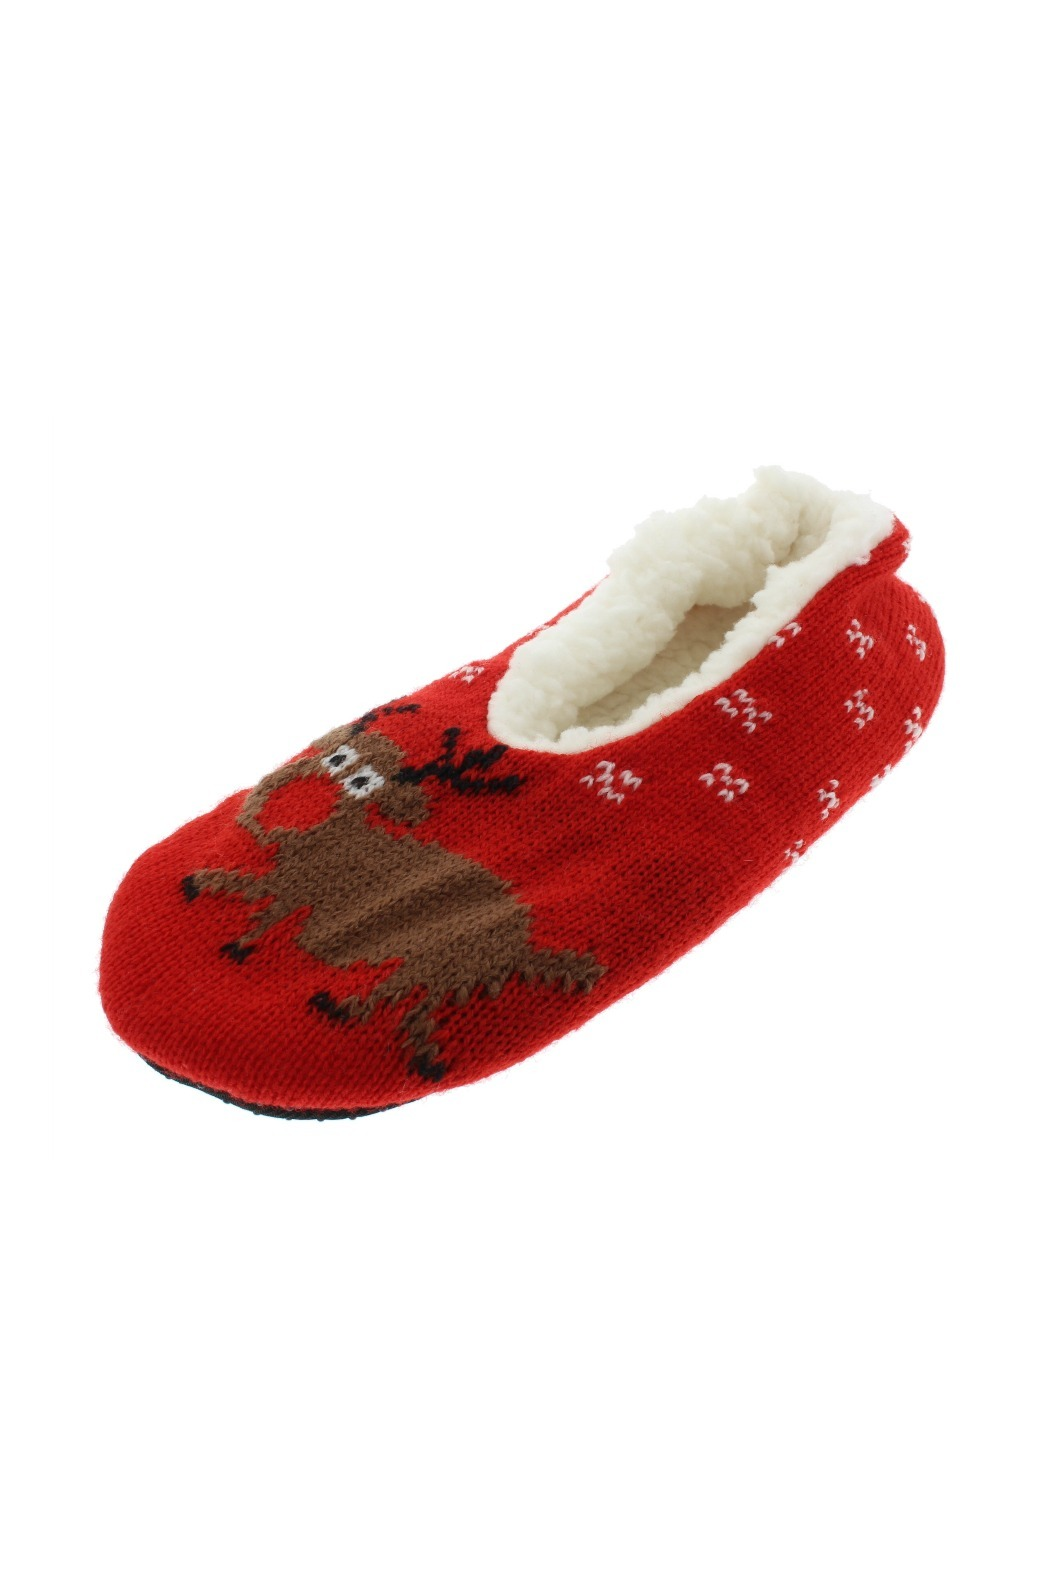 GMI Christmas Theme Sherpa Lined Slippers, Red White Green,